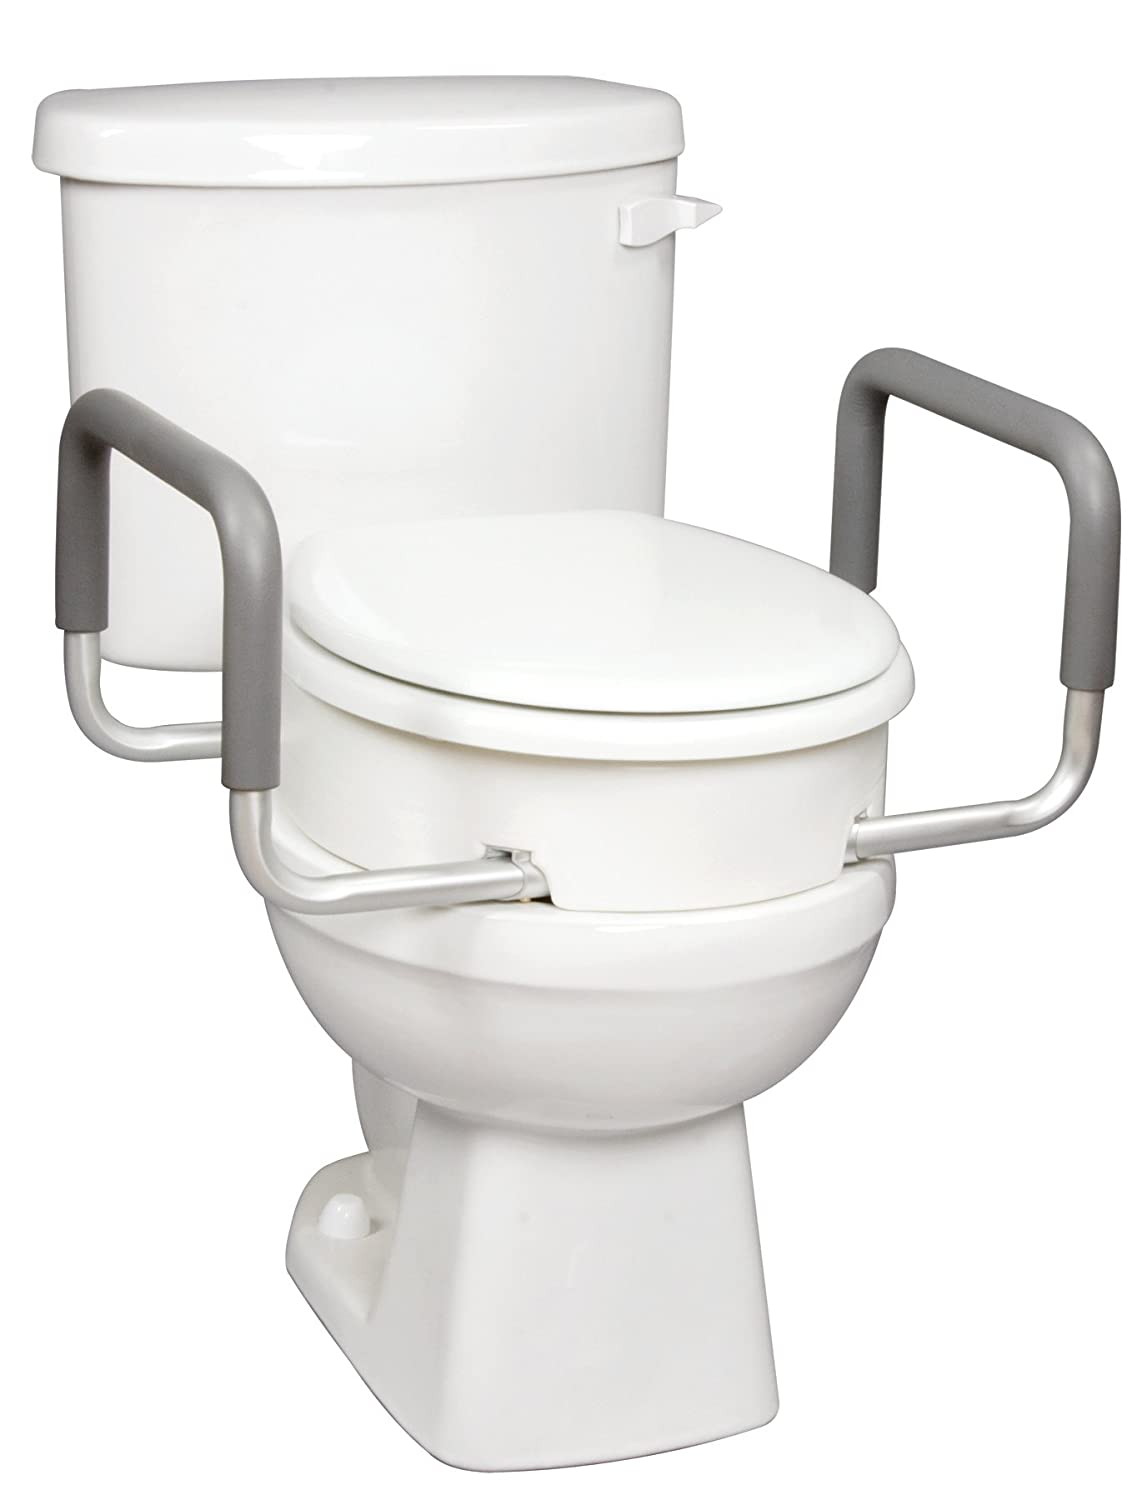 Amazon.com: Carex Toilet Seat Elevator with Handles for Elongated ...